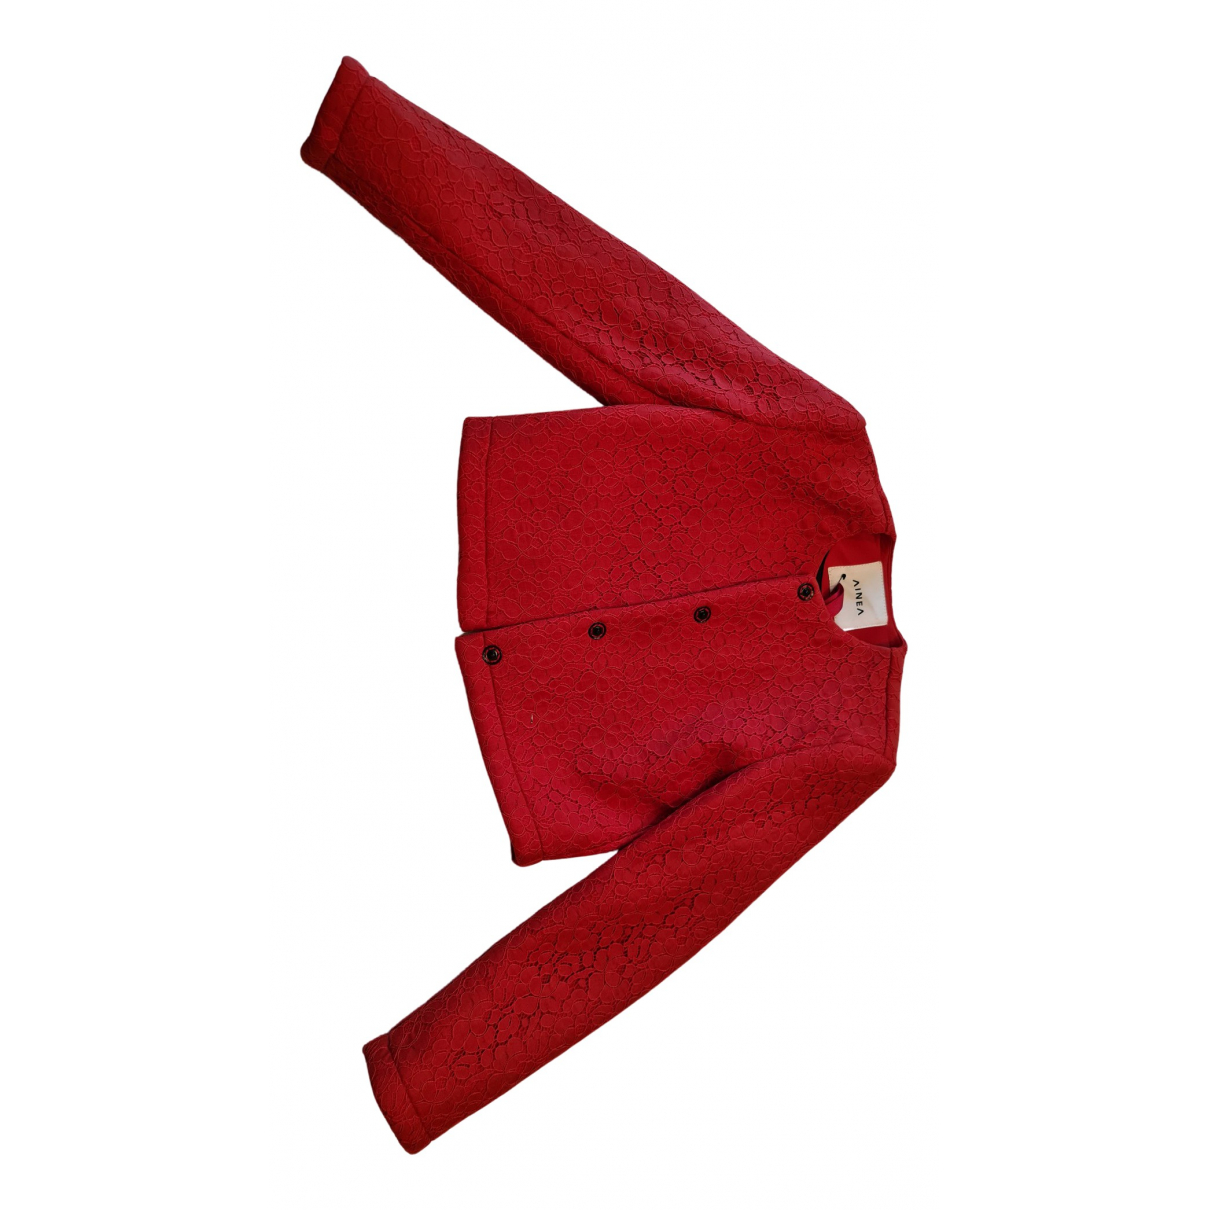 Ainea \N Red Cotton jacket for Women 40 IT